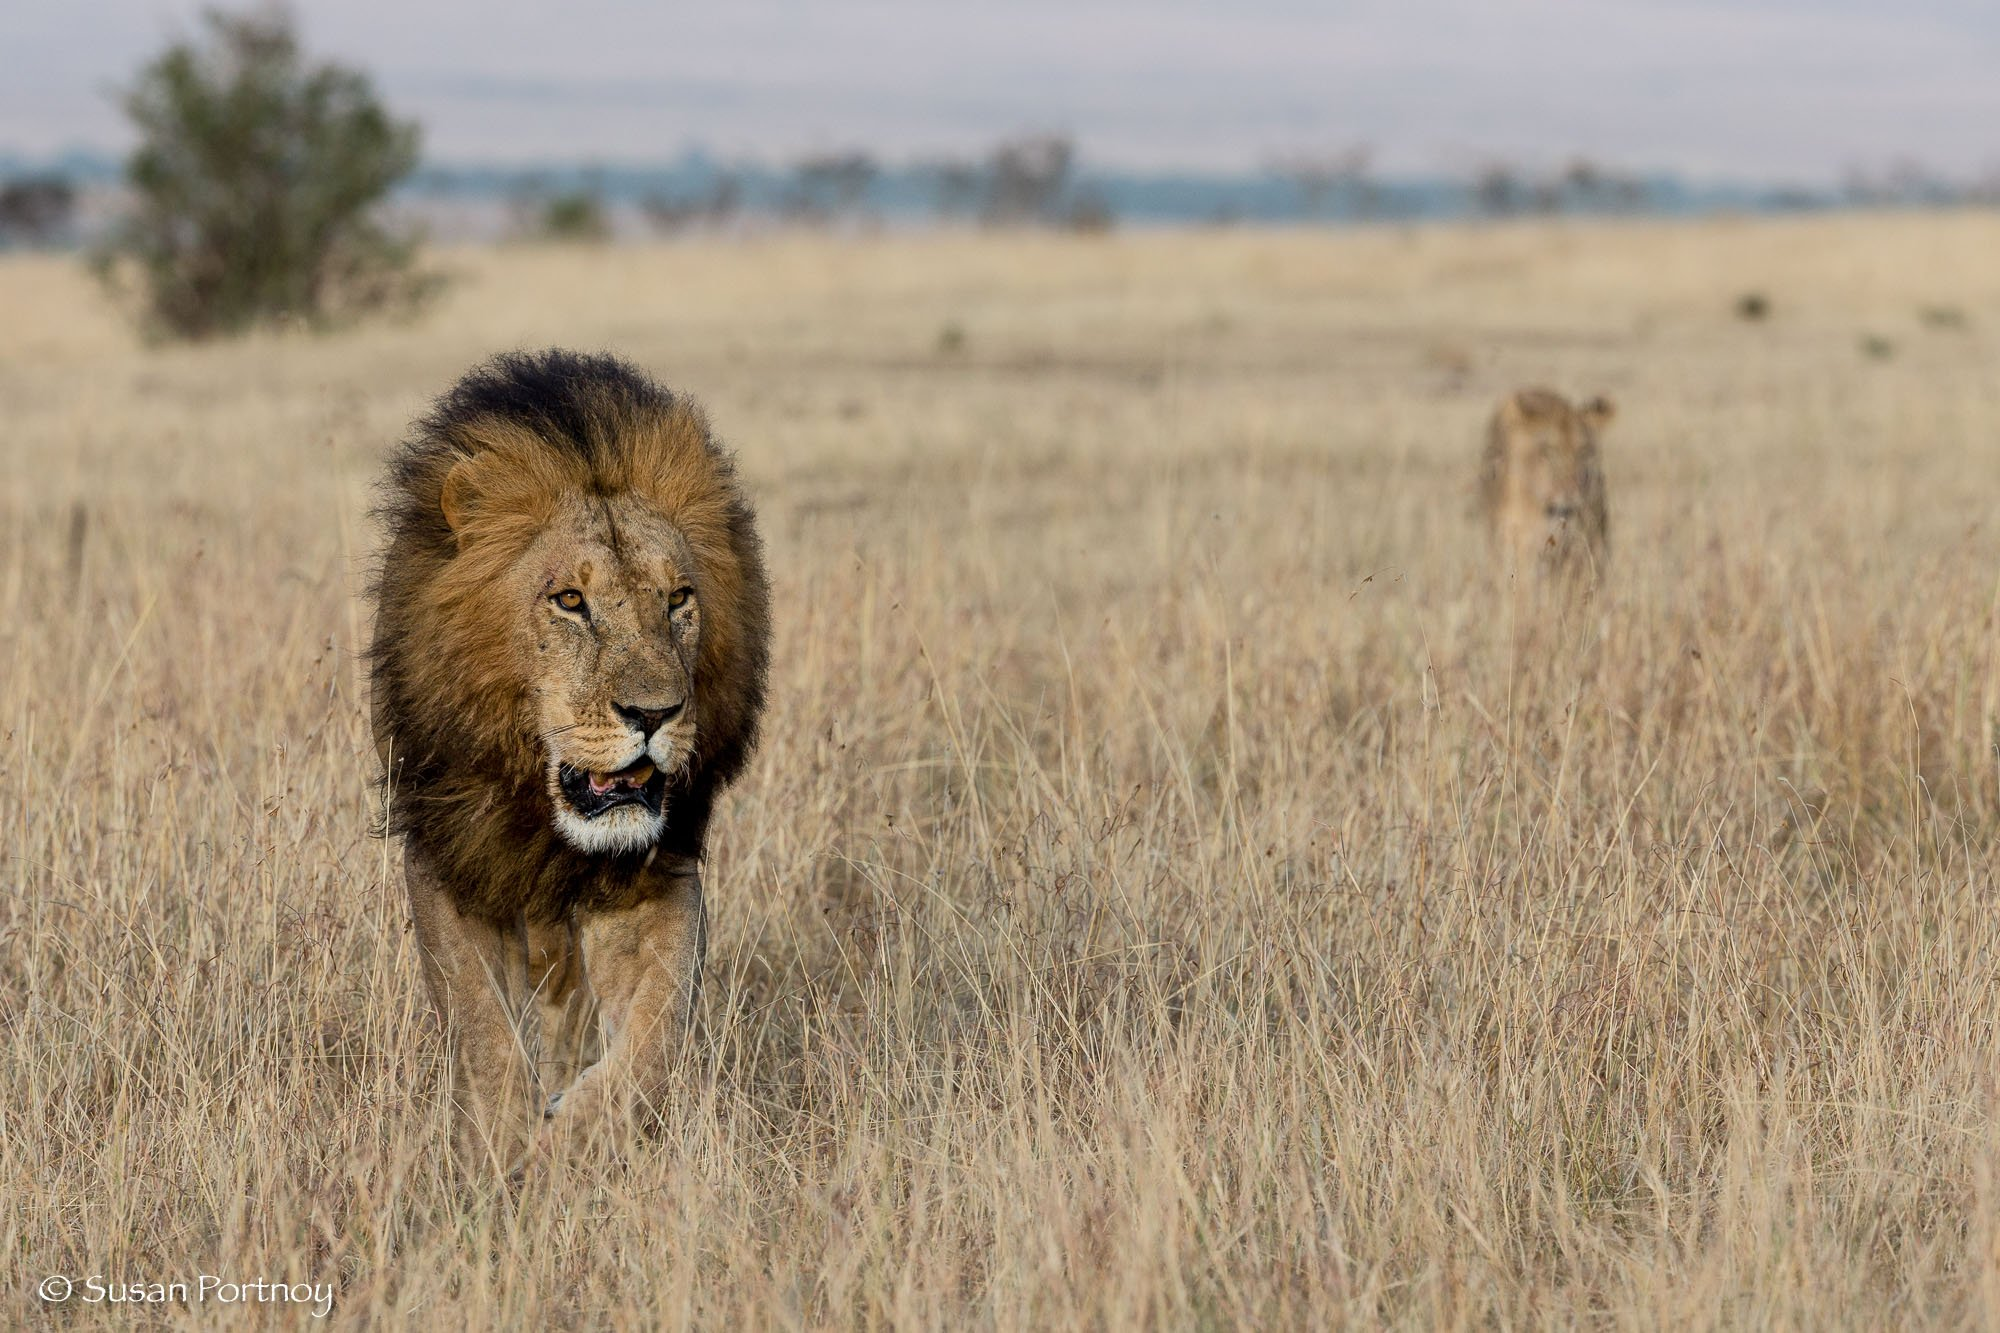 A male lion walking on the plain with a female lion trailing behind.